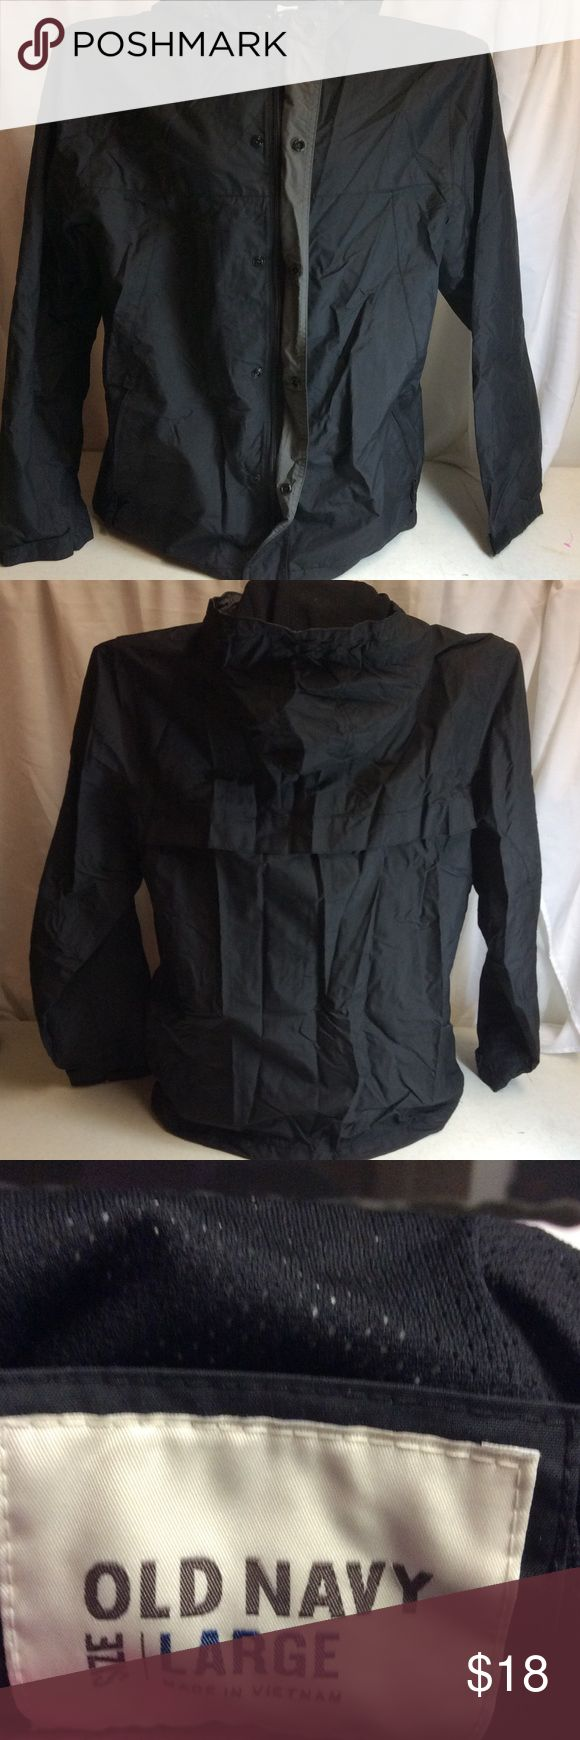 Men's Black Windbreaker Hooded Jacket ☔️ Old Navy Men's Black Windbreaker Jacket with hood! Size Medium. 🌦🌧🌨 Gently Worn. Great condition! Perfect for rainy or snowy weather! 🌧🌧 Old Navy Jackets & Coats Windbreakers